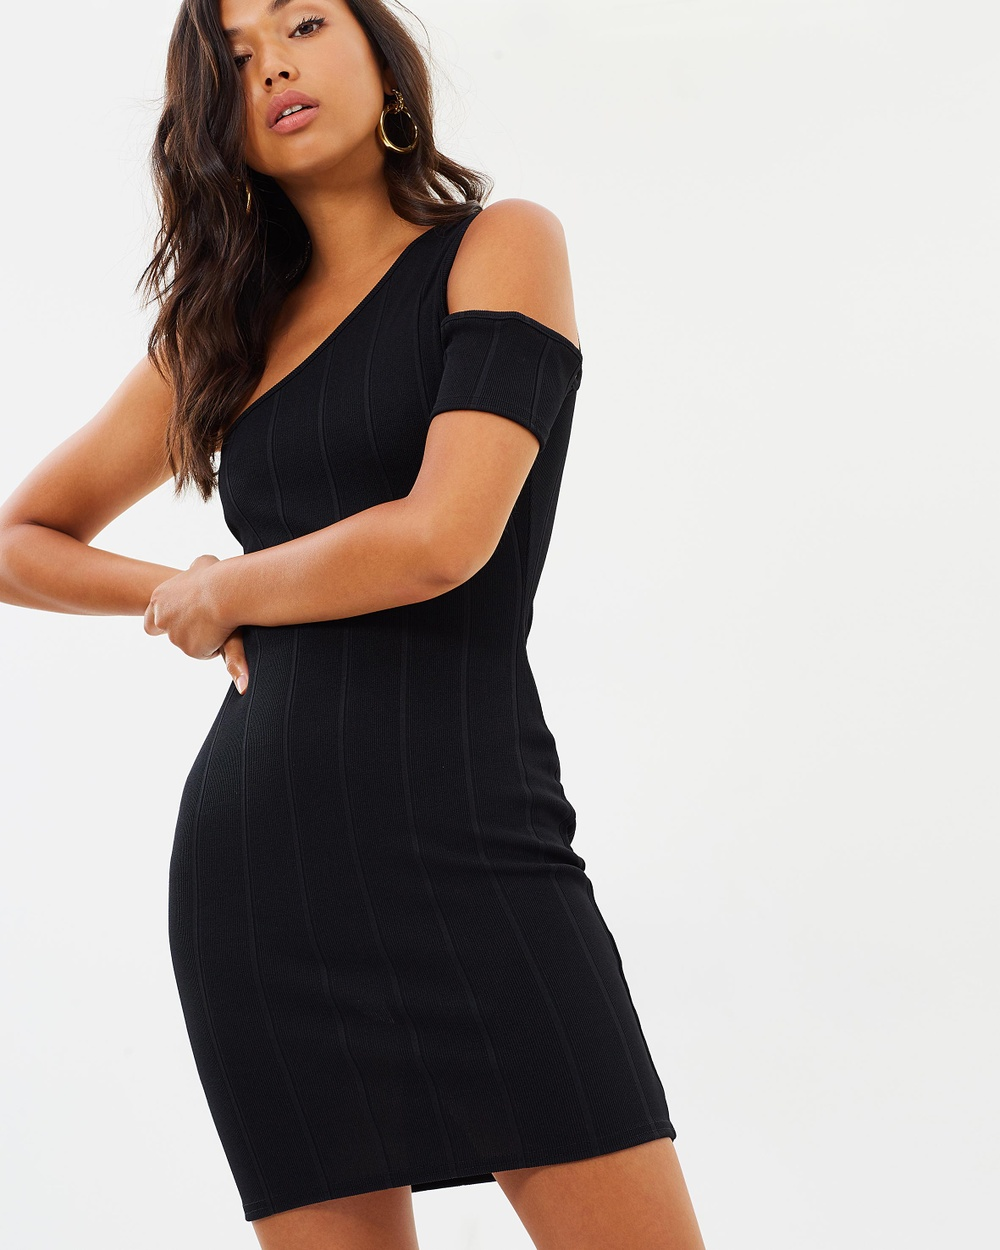 Missguided Bandage One Shoulder Cut Out Body Con Dress Bodycon Dresses Black Bandage One-Shoulder Cut-Out Body-Con Dress